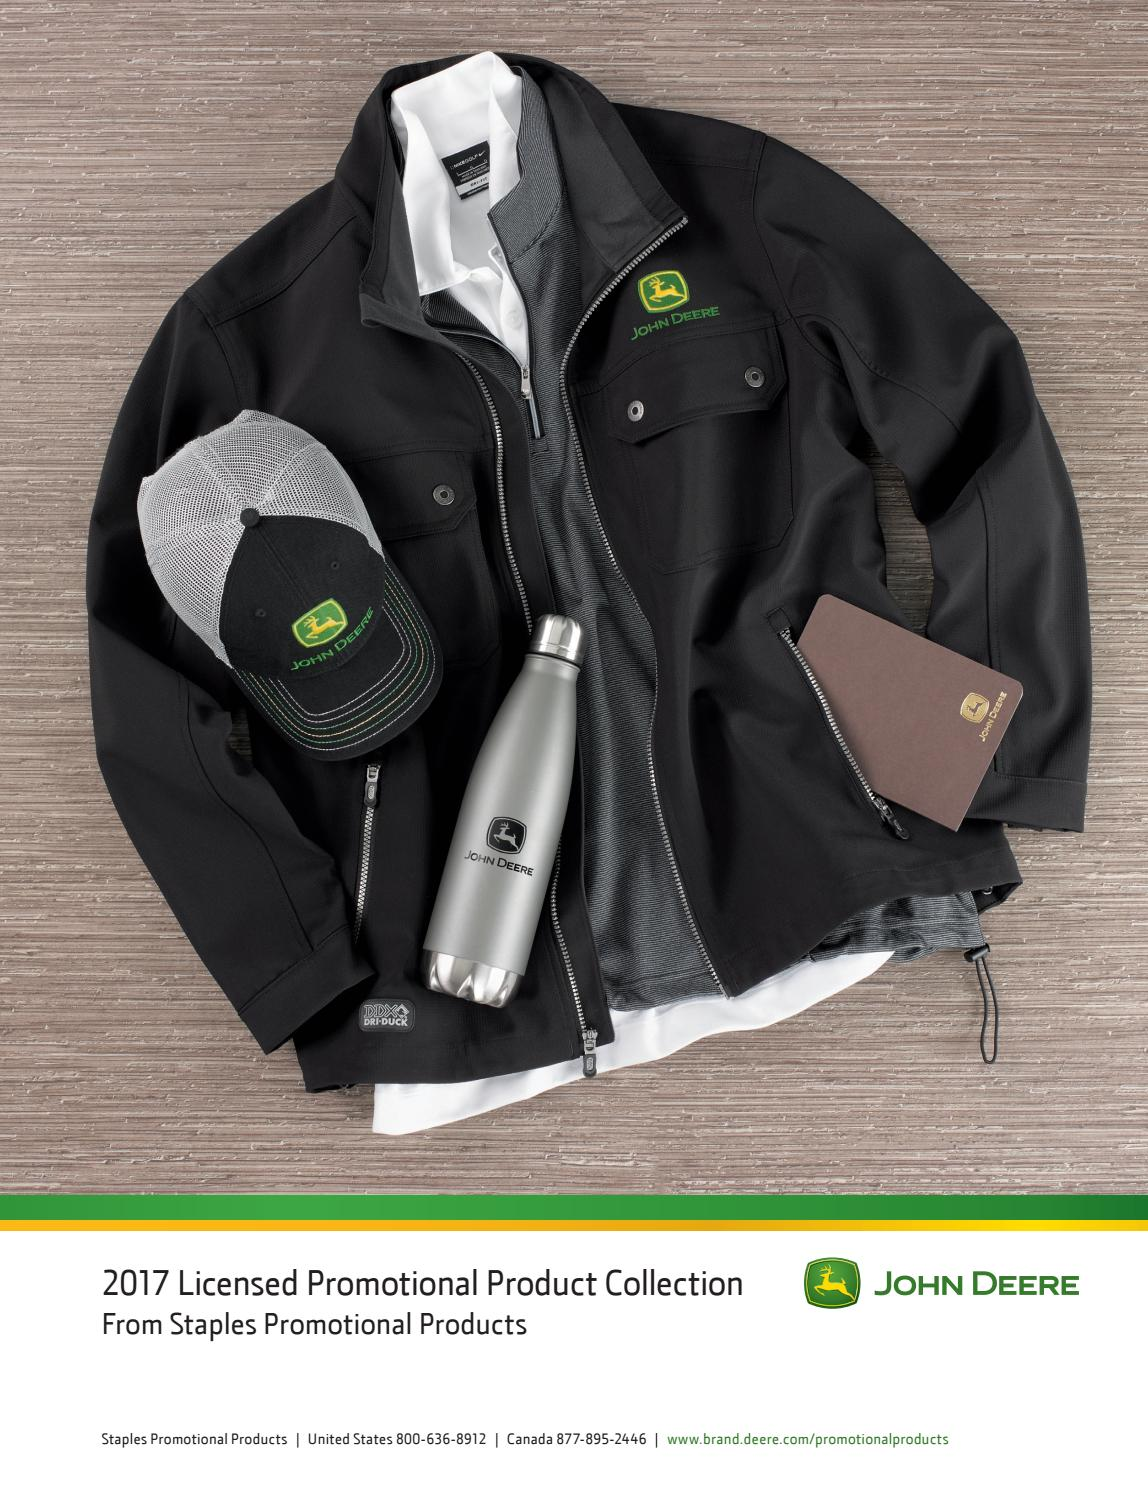 1b5732ebd John Deere 2017 by Staples Promotional Products - issuu